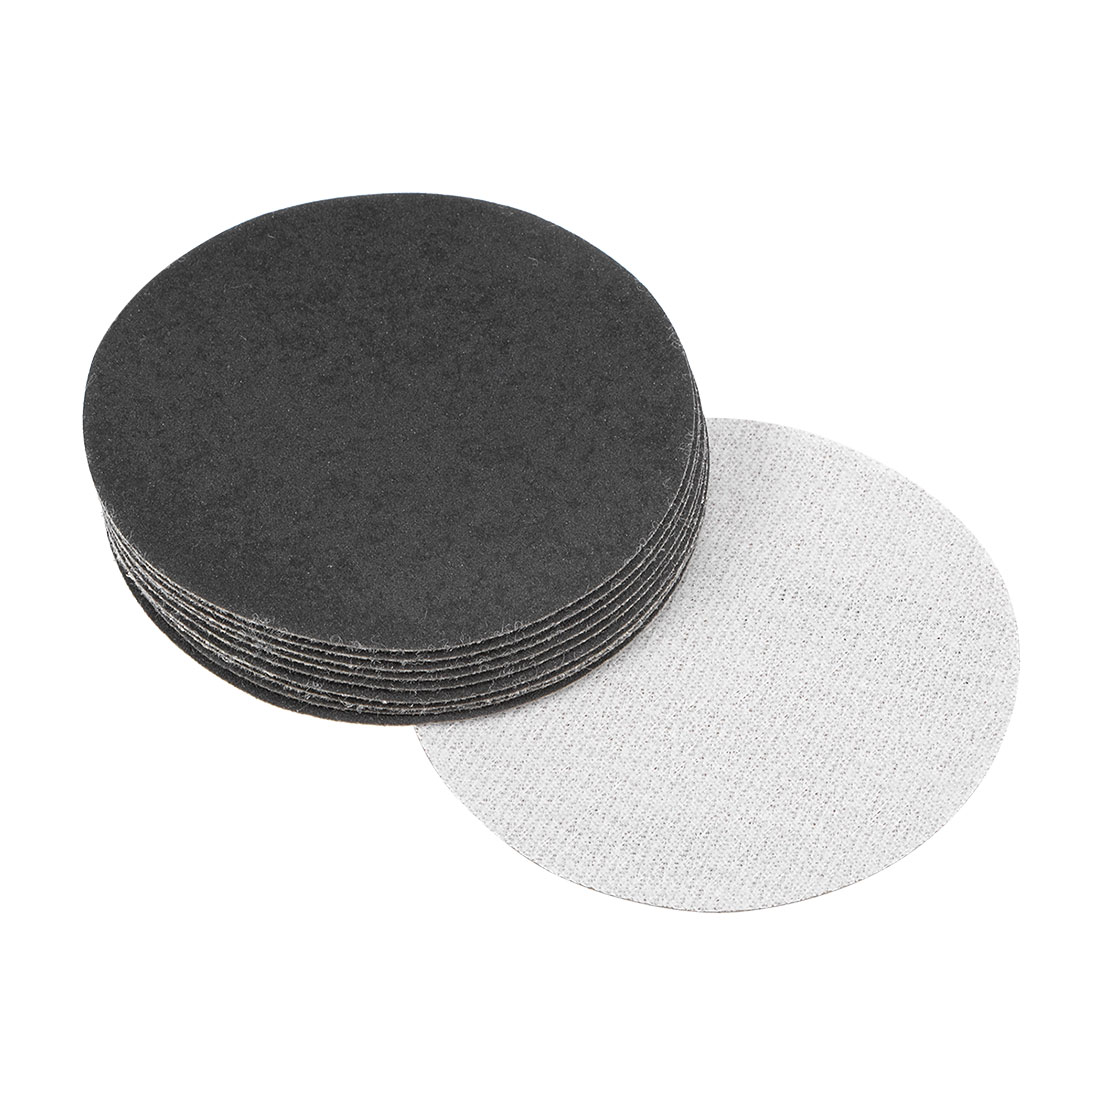 3 inch Wet Dry Discs 320 Grit Hook and Loop Sanding Disc Silicon Carbide 10pcs